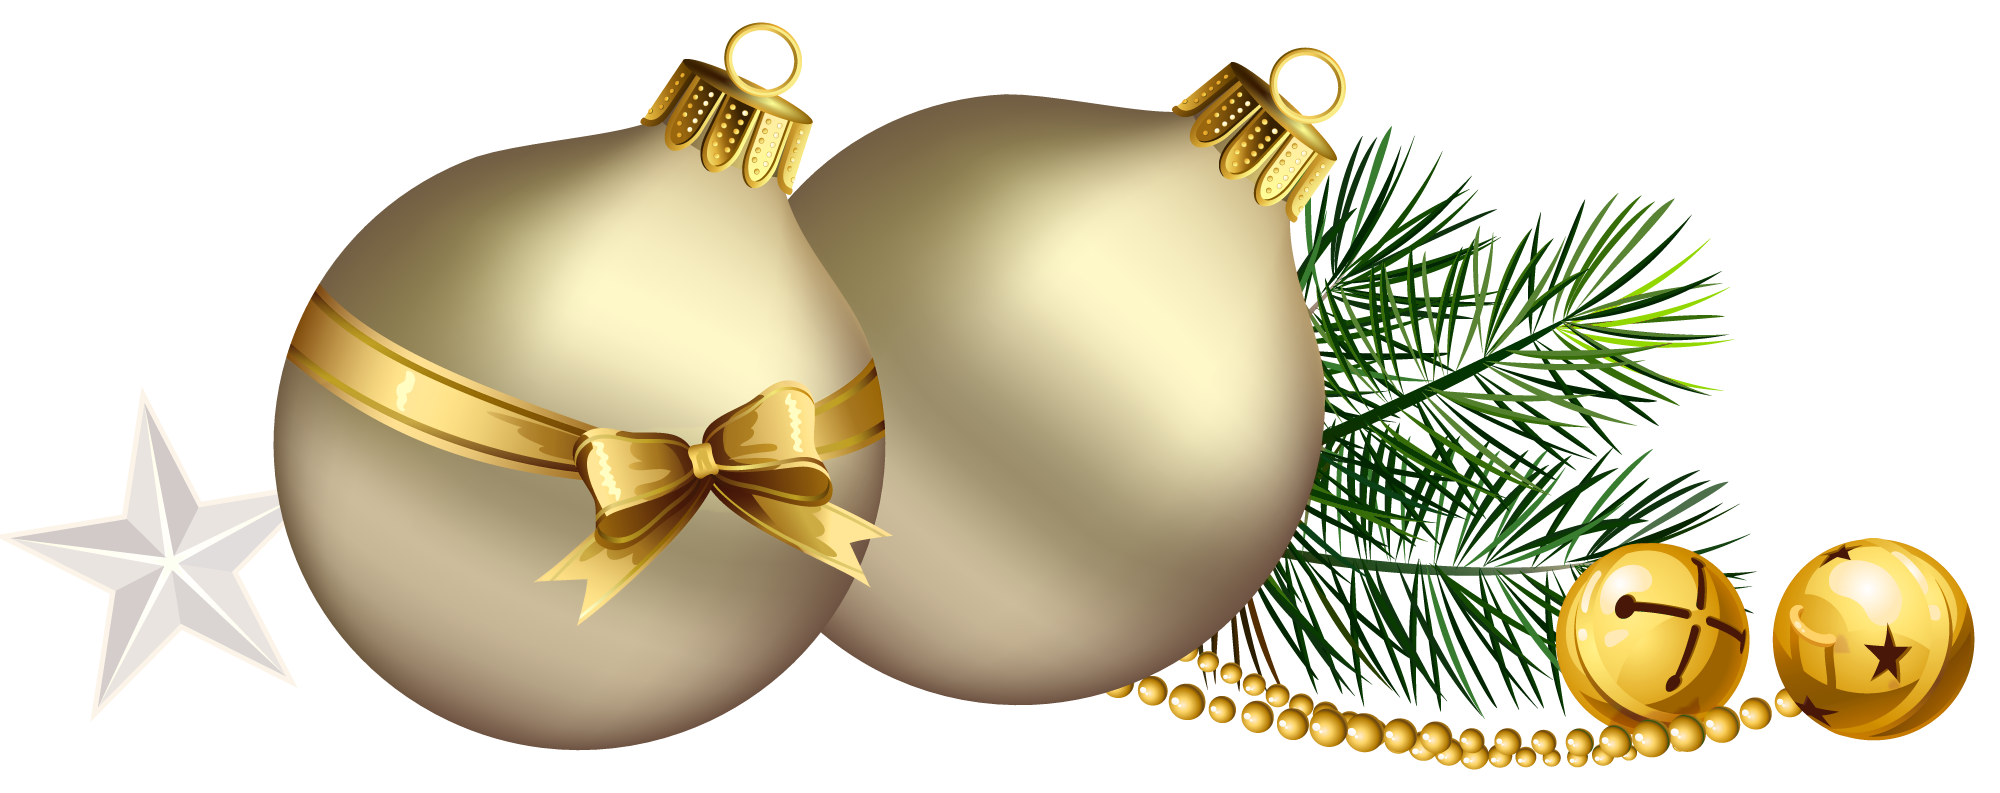 Christmas balls with pine. Gold clipart xmas